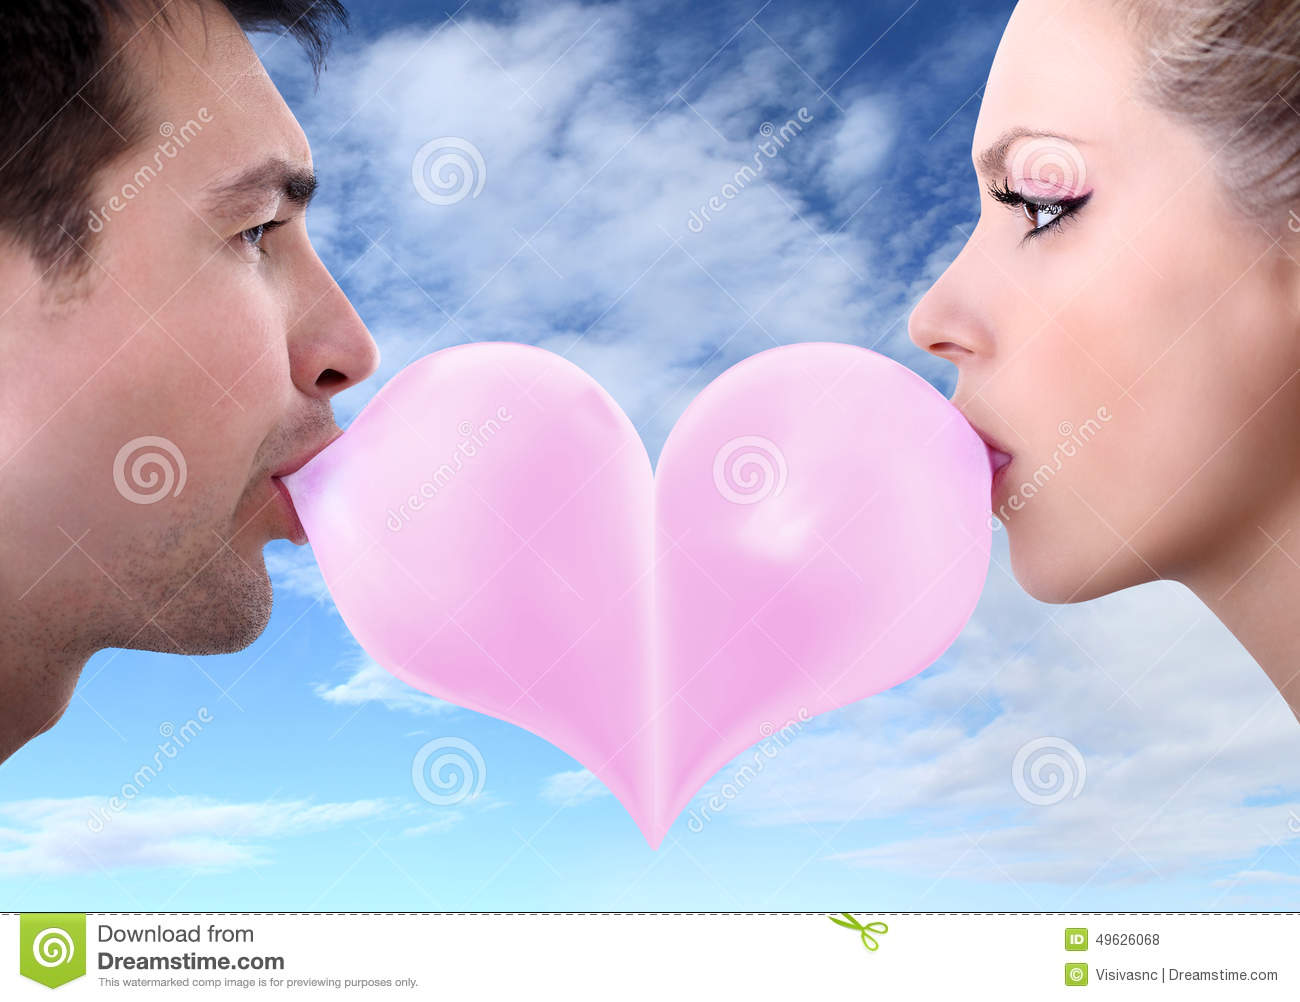 lovers couple kiss heart shaped valentine day with chewing bubble gum clip art free bubble gum clip art images